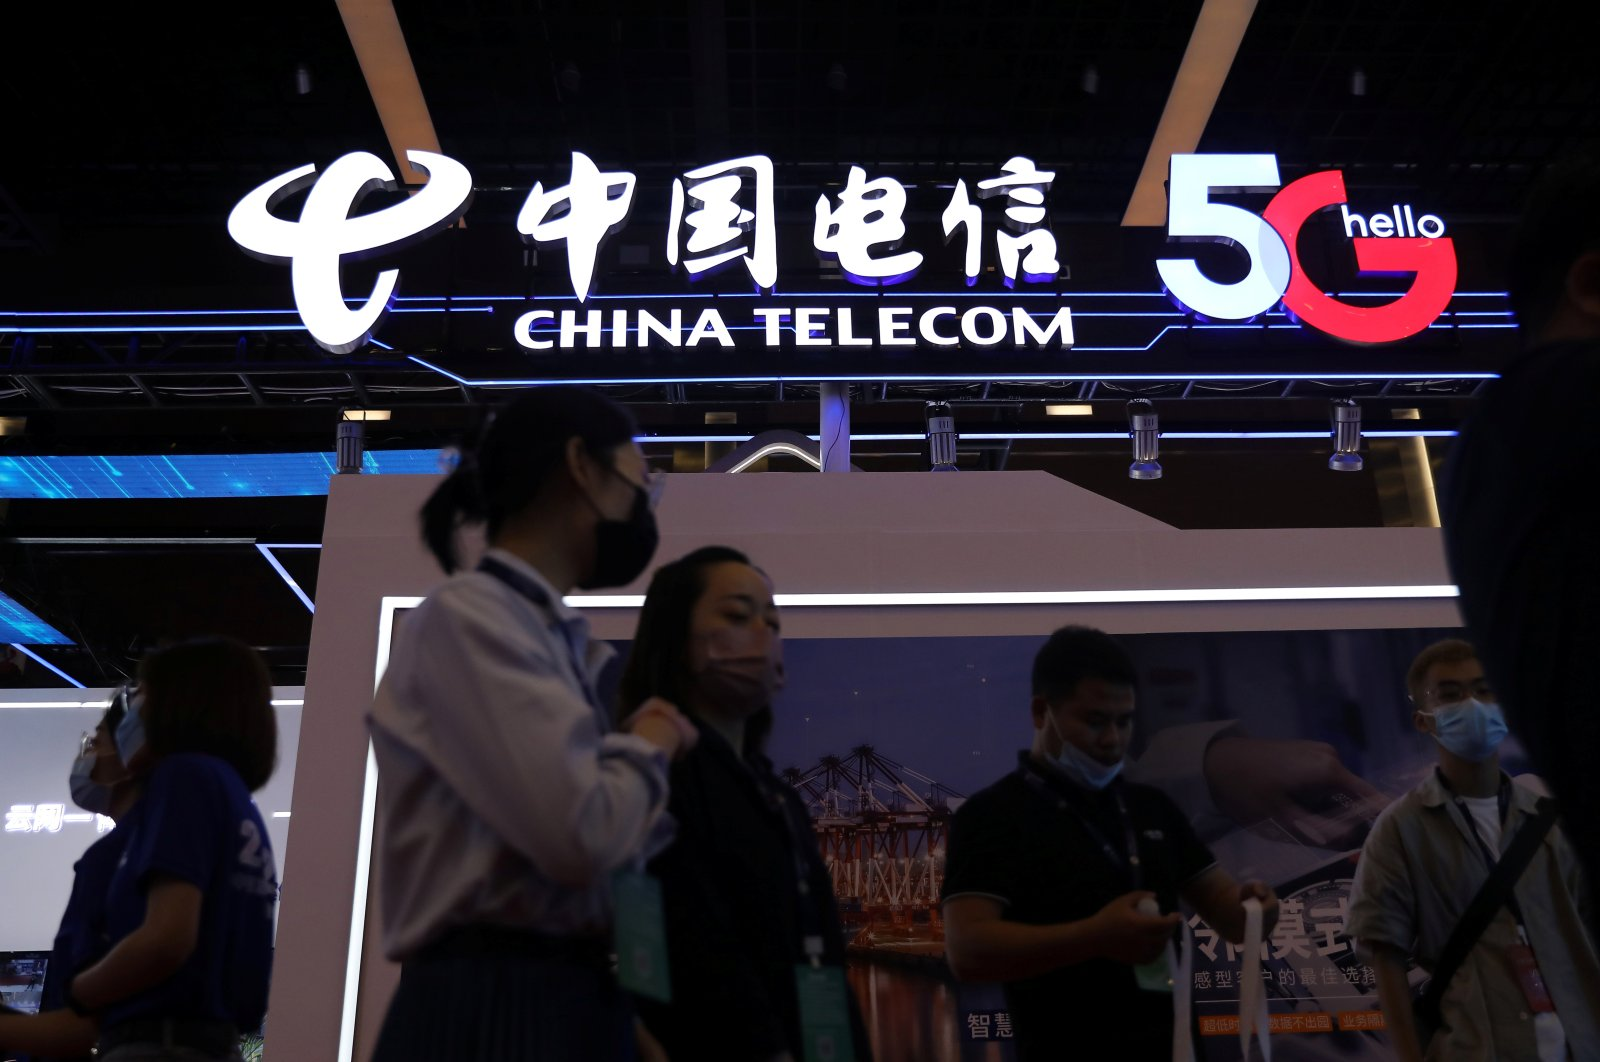 People are seen at a China Telecom booth at an exhibition during China Internet Conference in Beijing, China, July 13, 2021. (Reuters Photo)